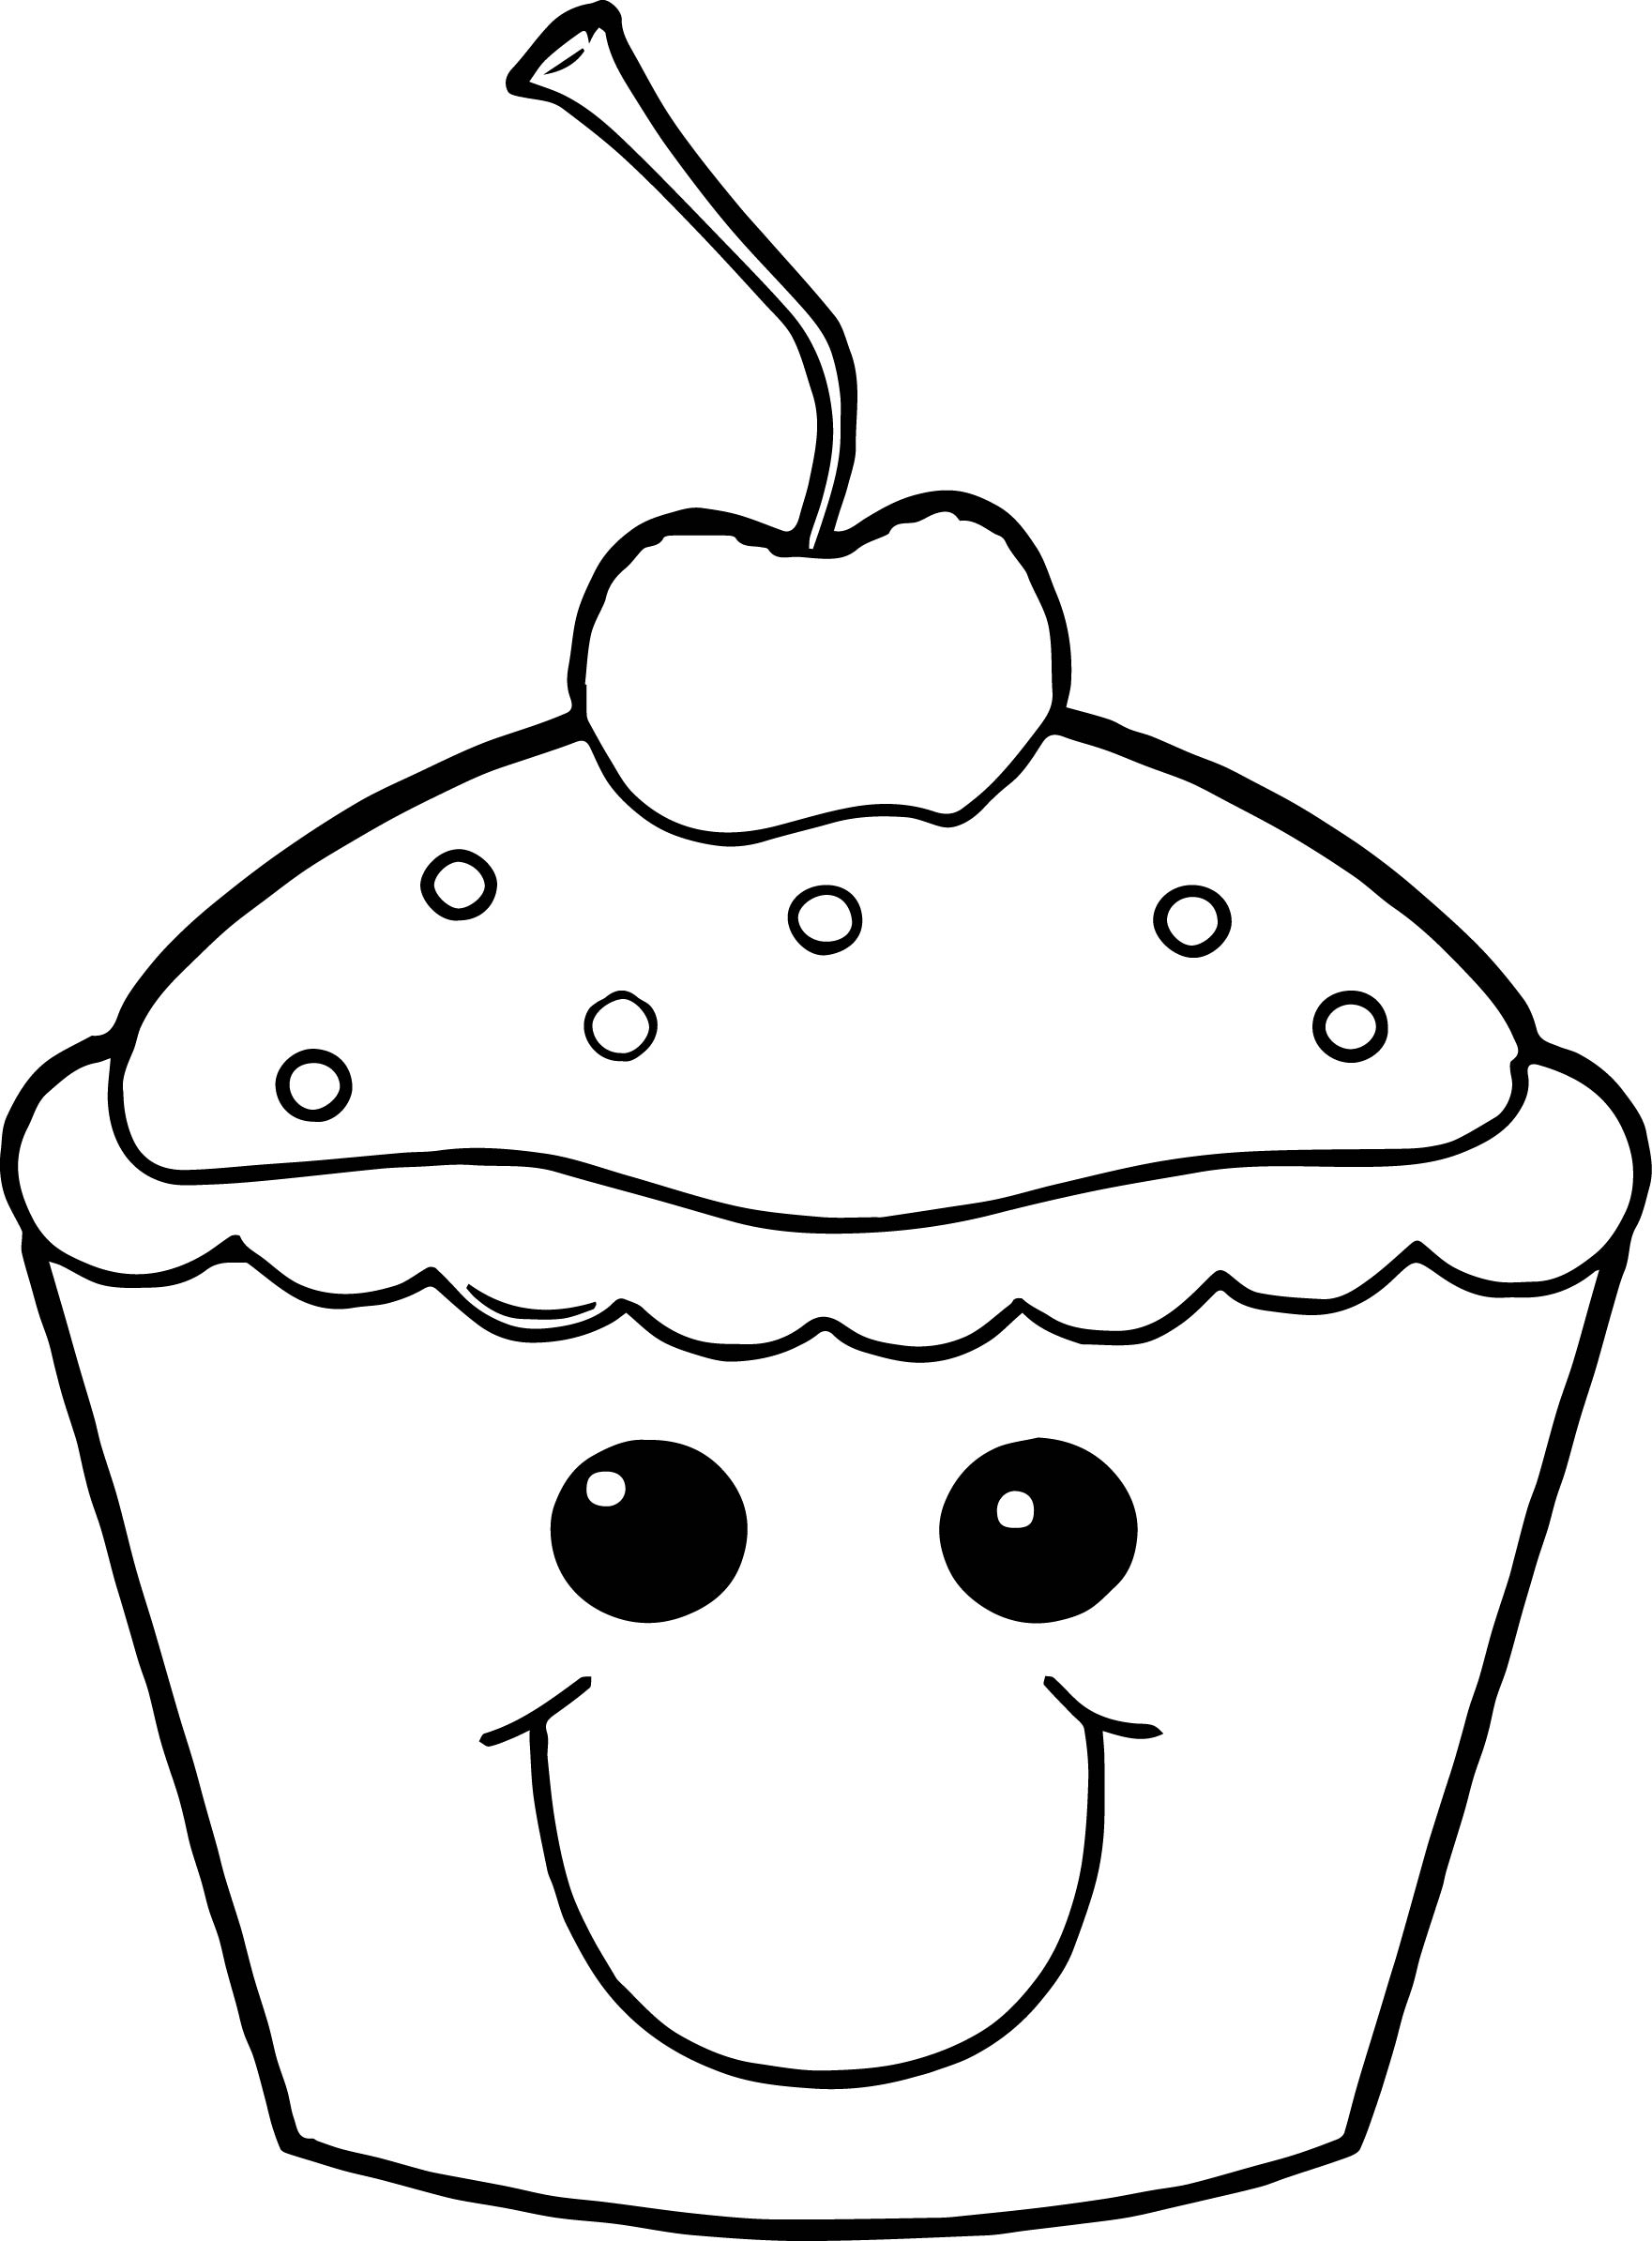 cupcake similar image and photo in food